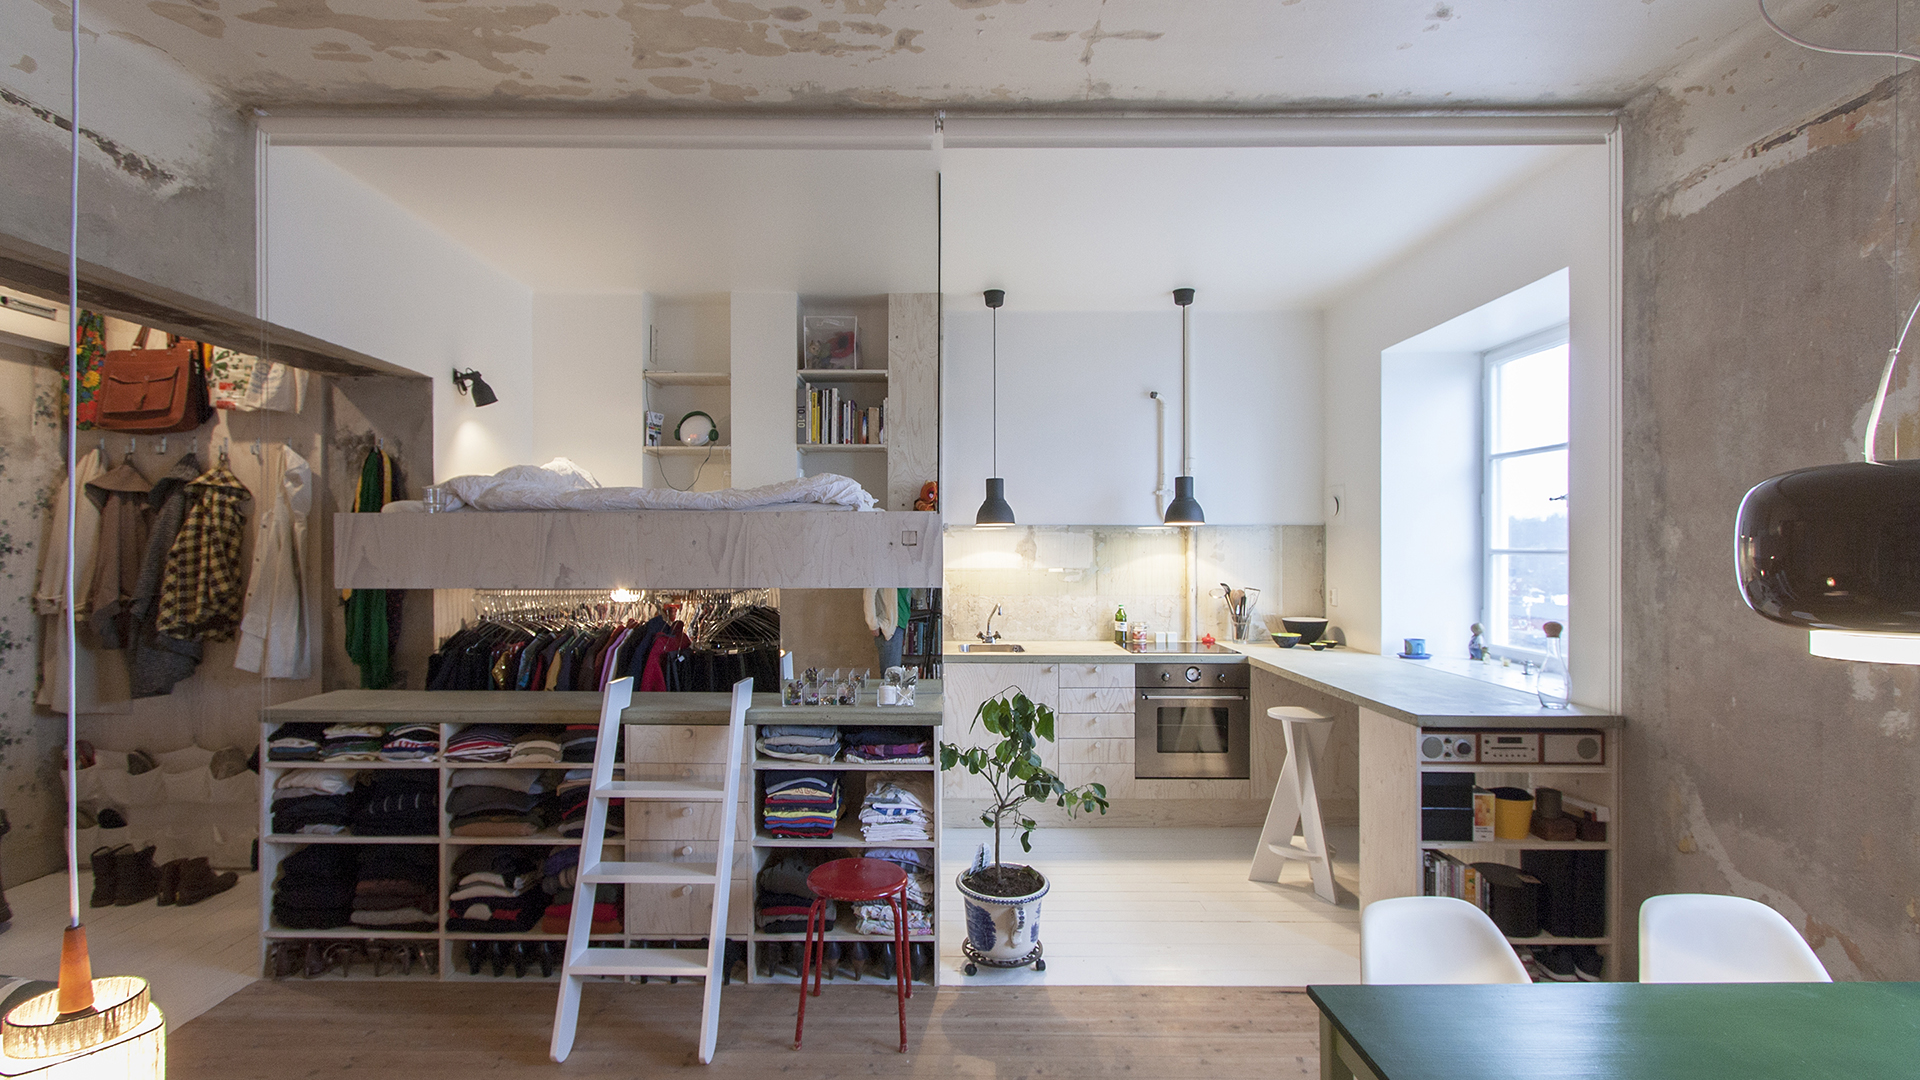 Before-and-after pics: Storage room transforms into studio apartment